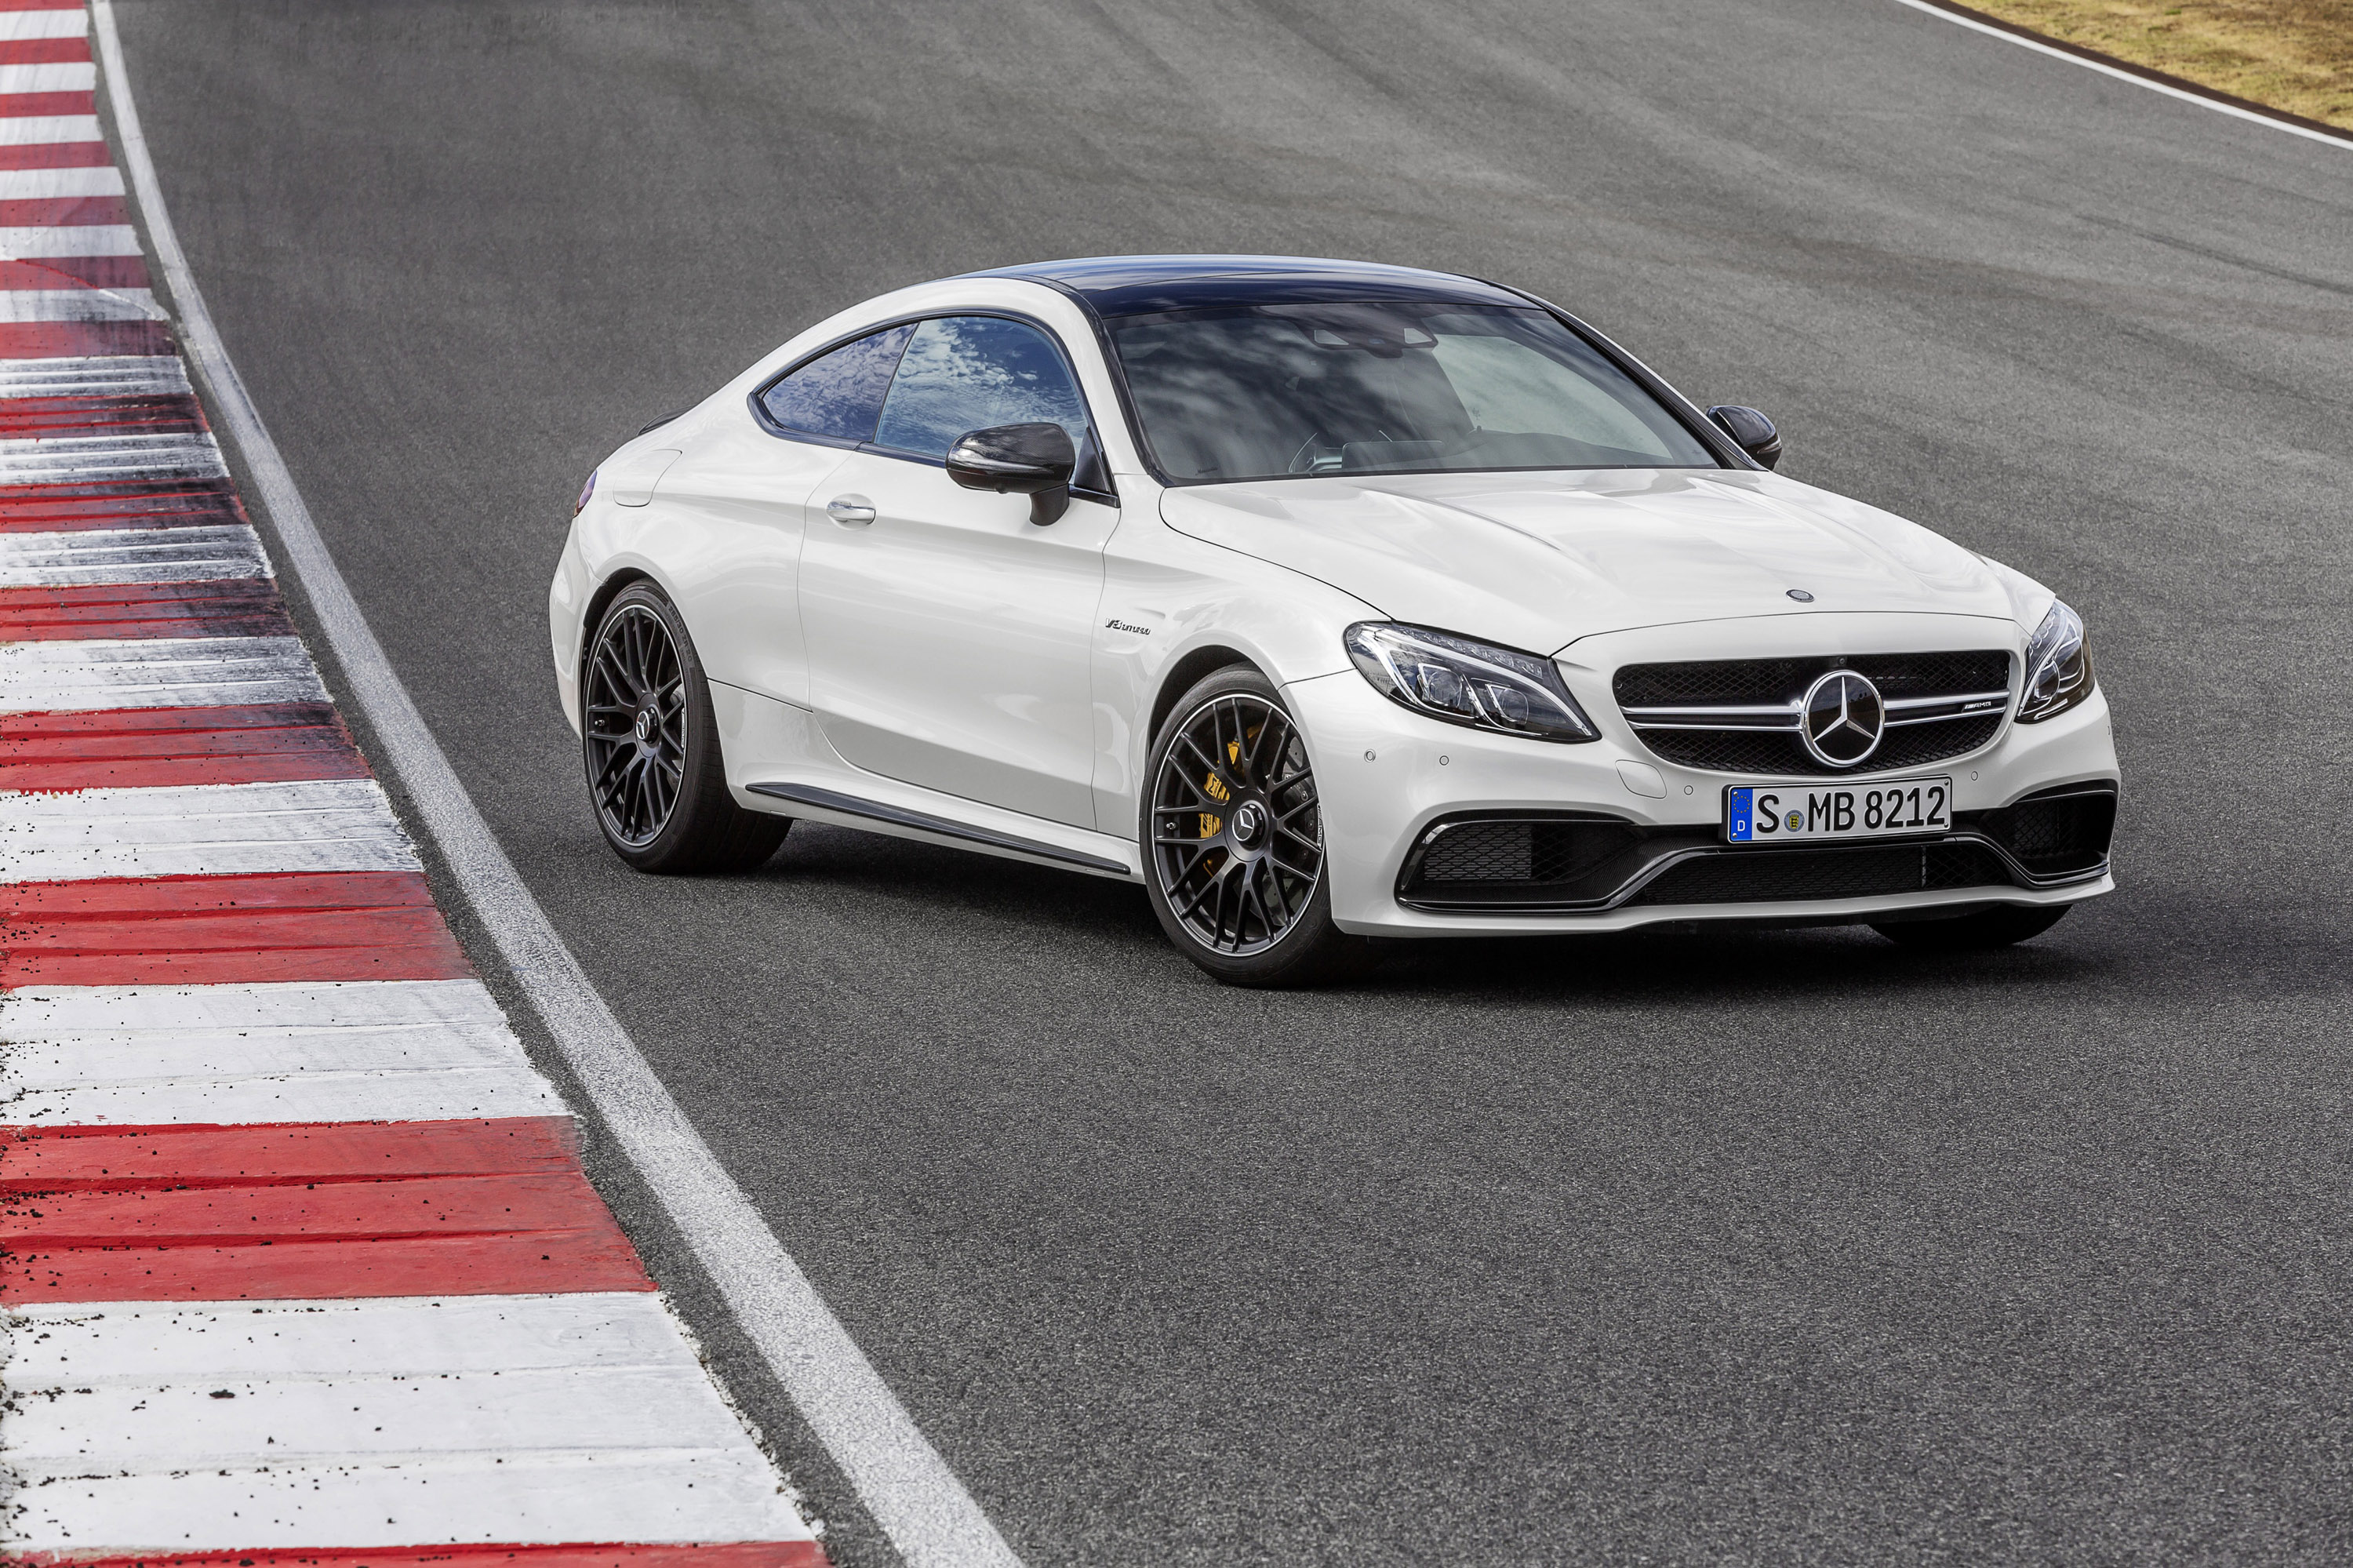 Mercedes-Benz C63 AMG Coupe photo #1